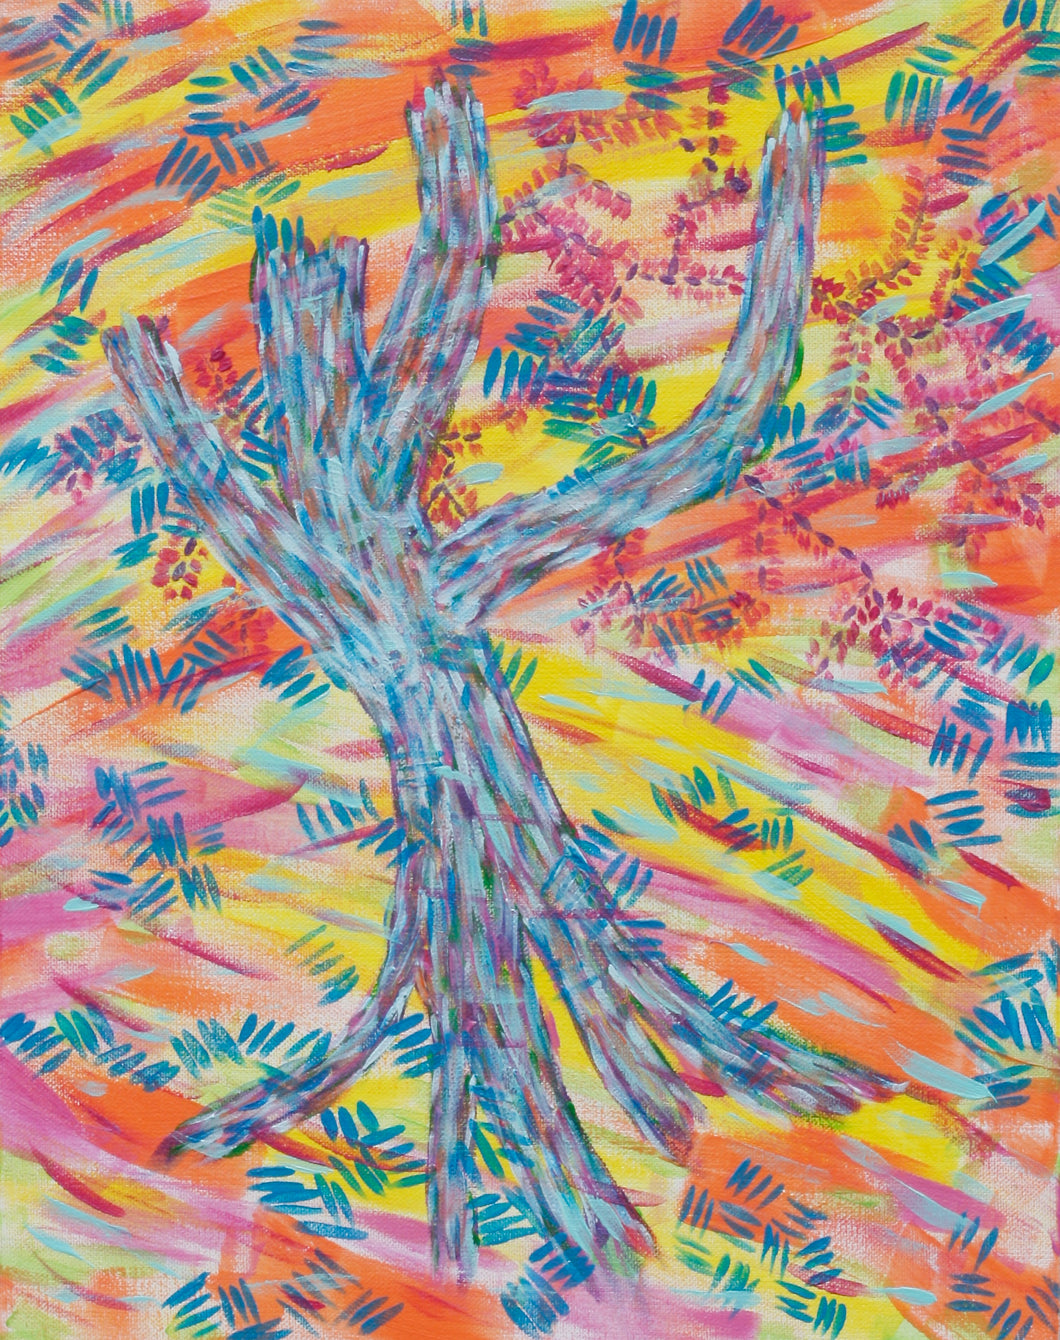 Blue Tree, original acrylic painting 18